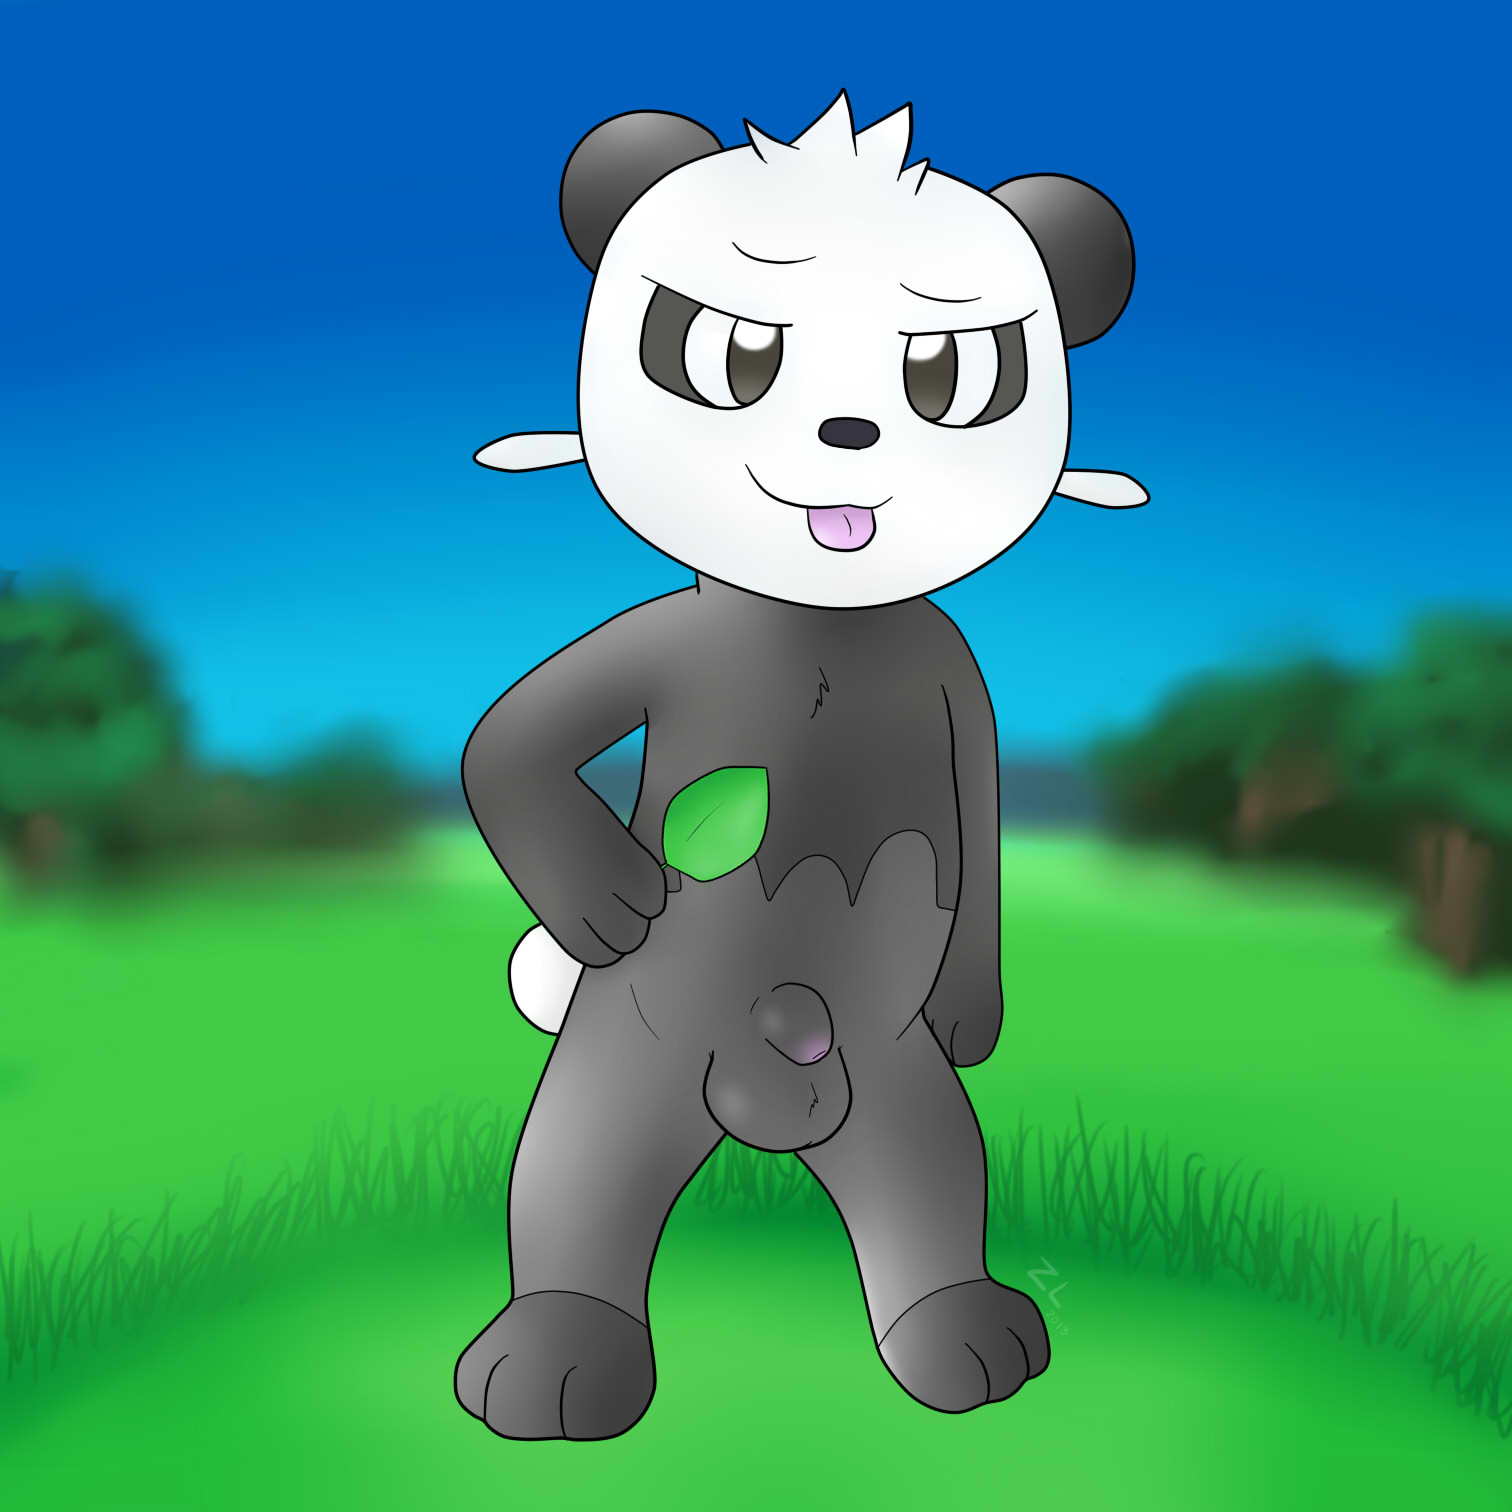 Pancham (oh look a penis!)